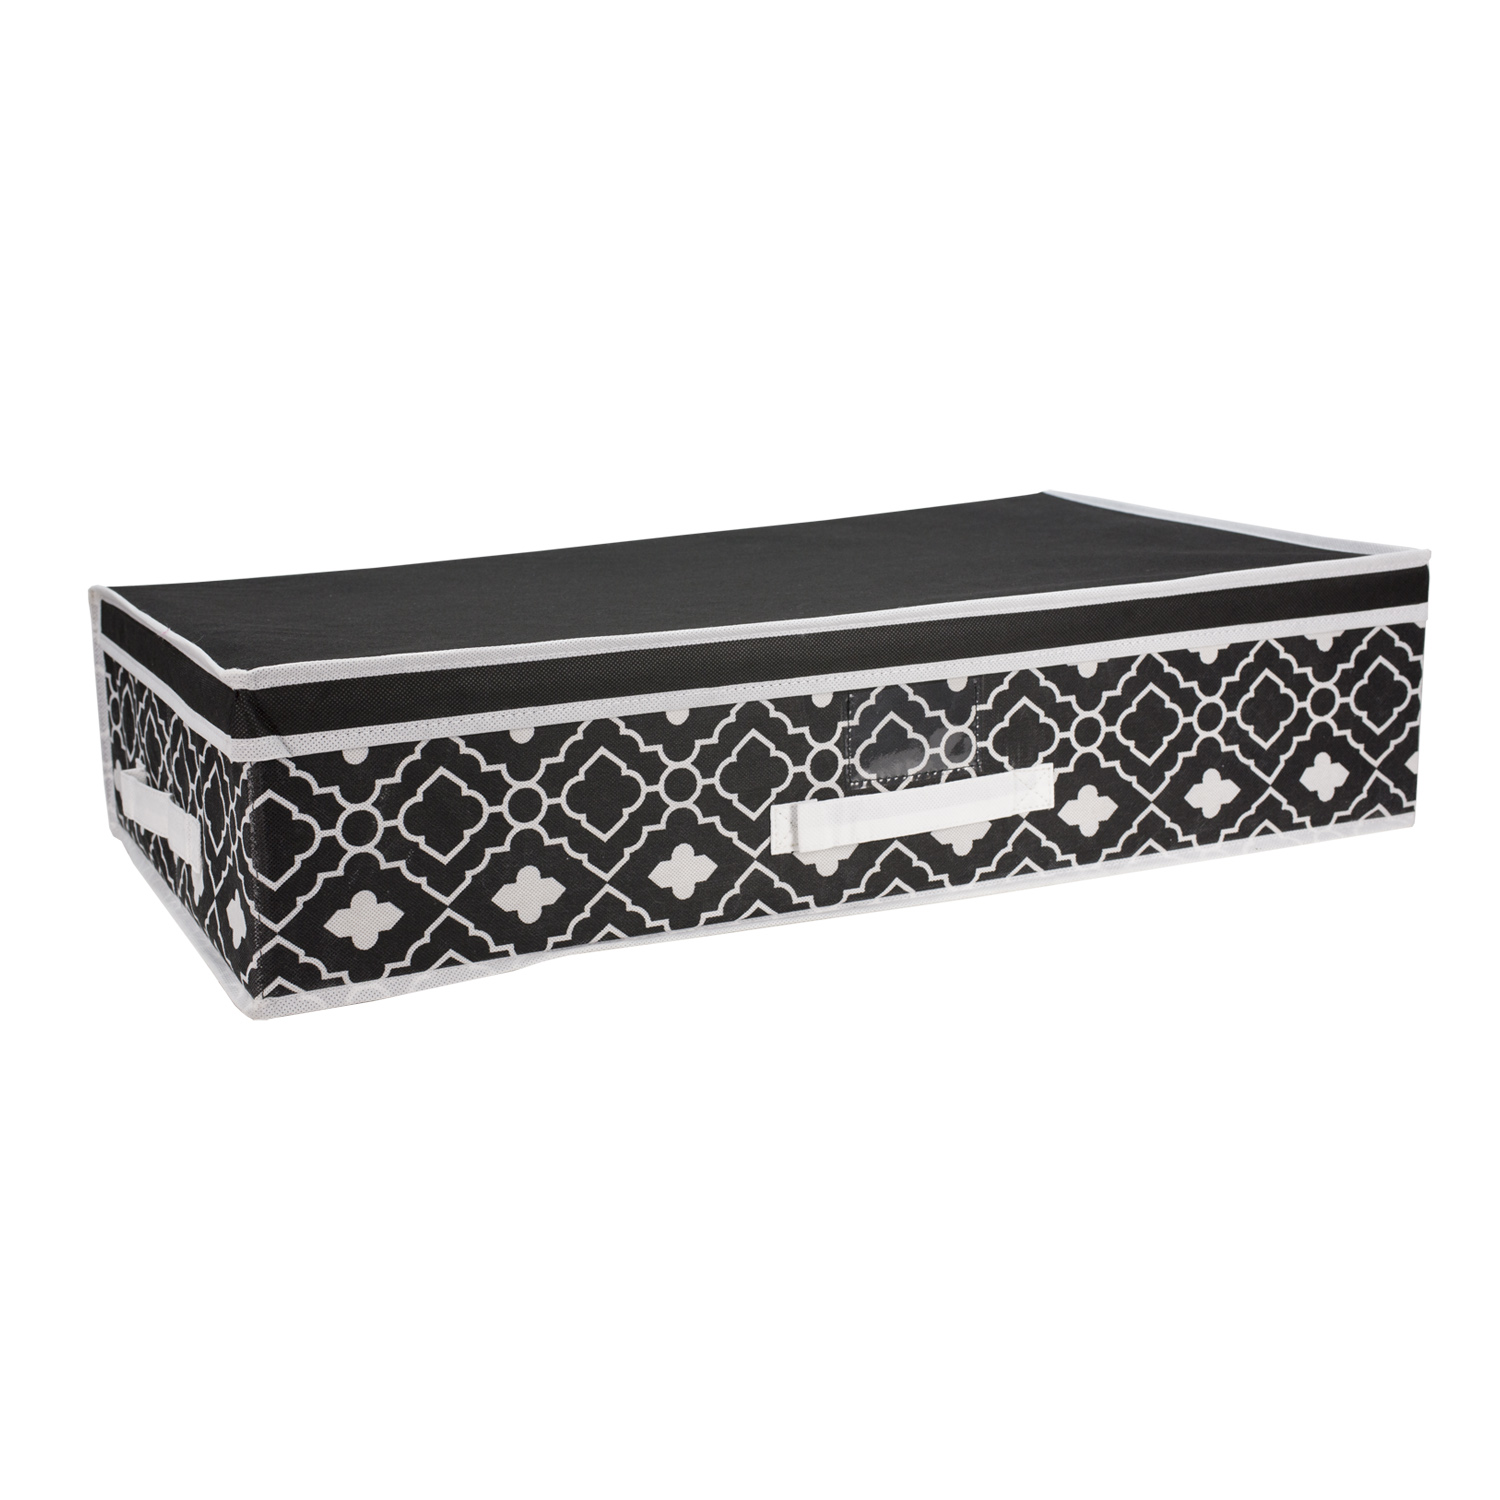 Home Basics Ana Davis Under Bed Lattice Storage Box, Black and White